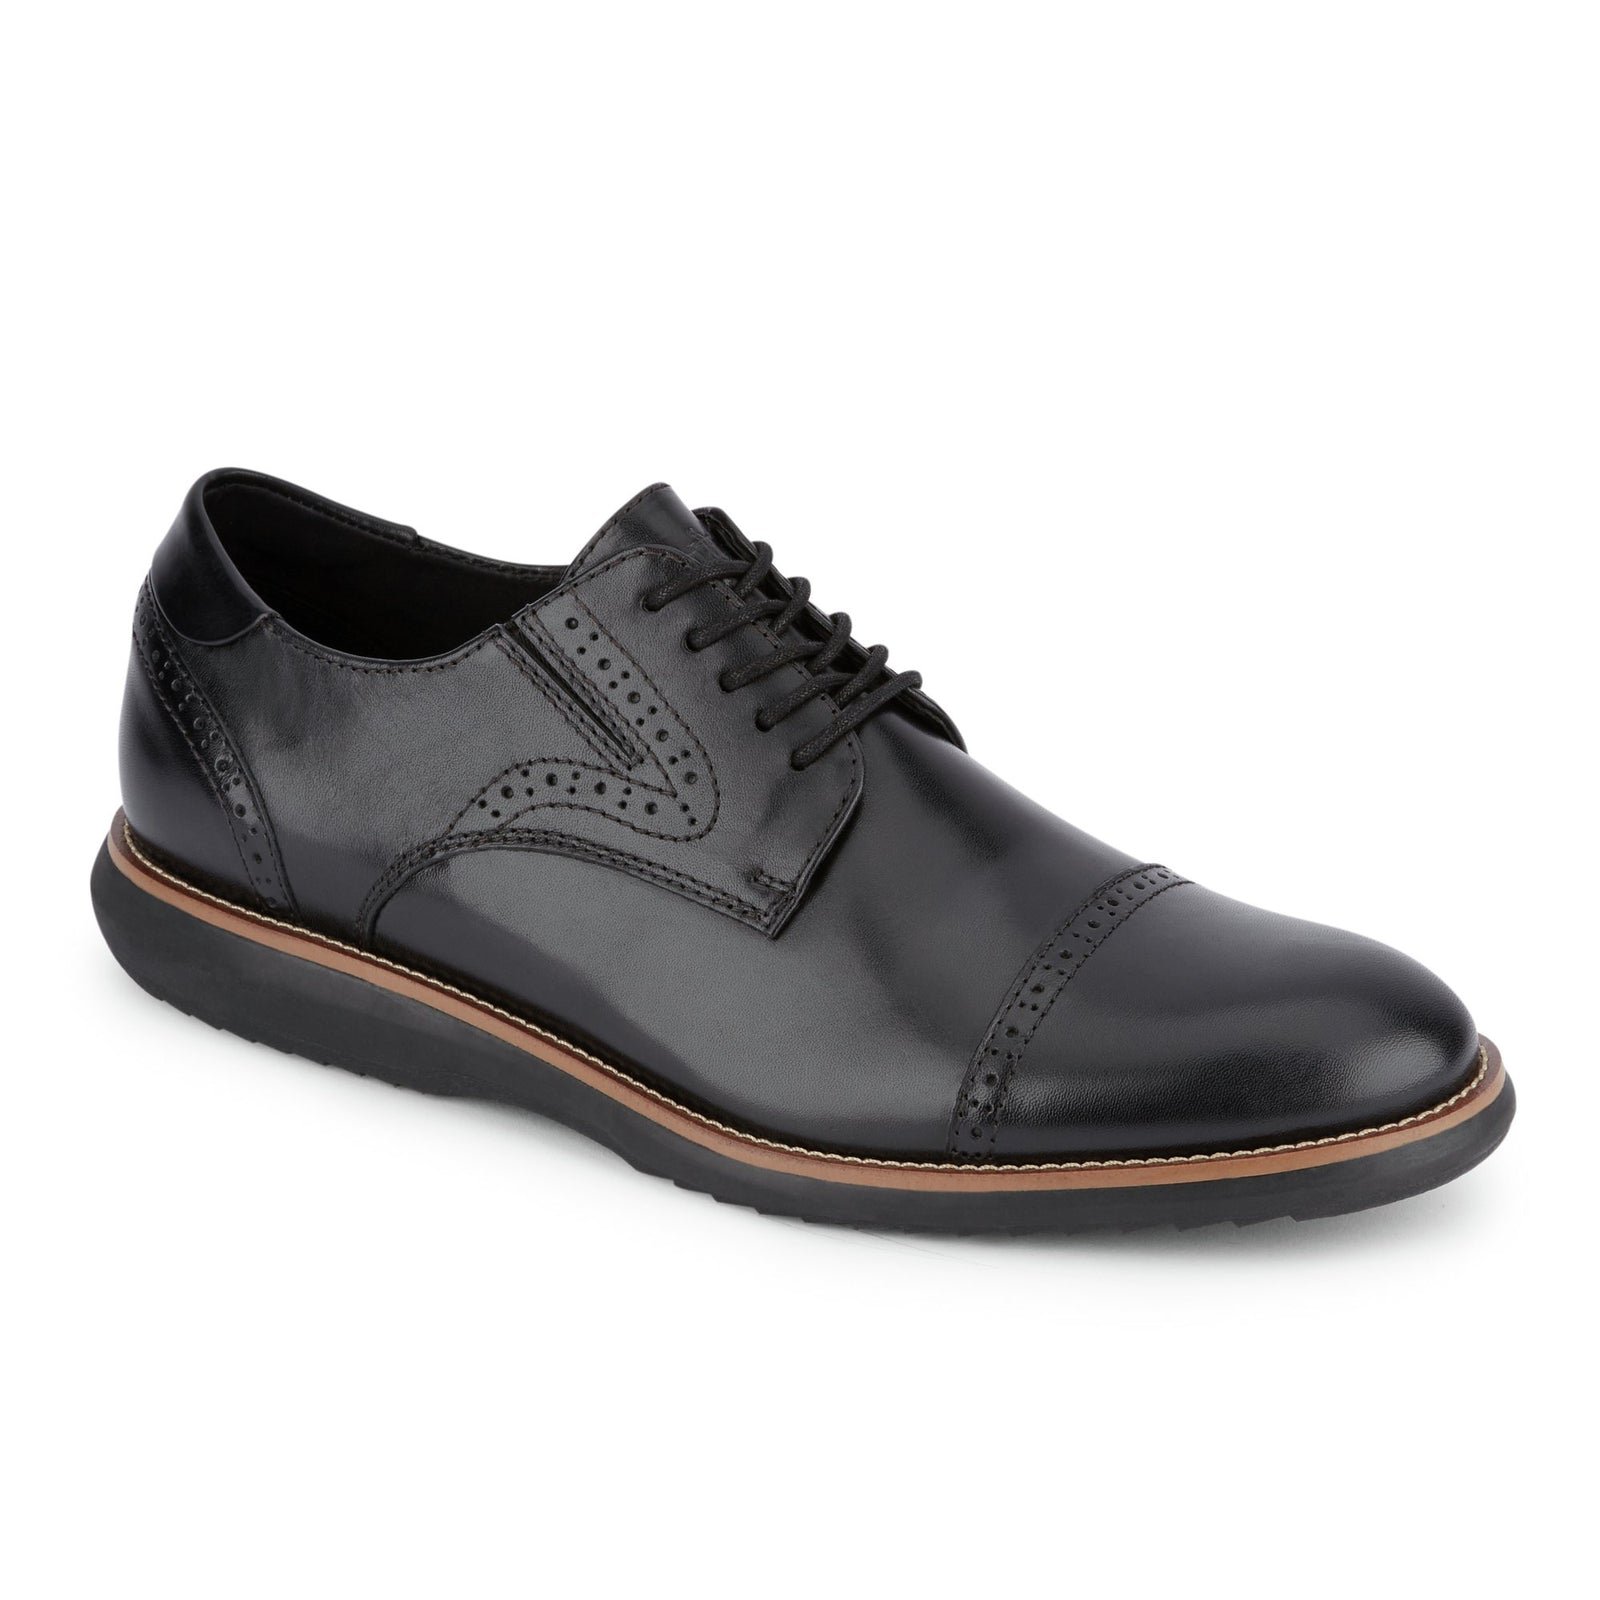 24e8053a Collections - Dockers Shoes